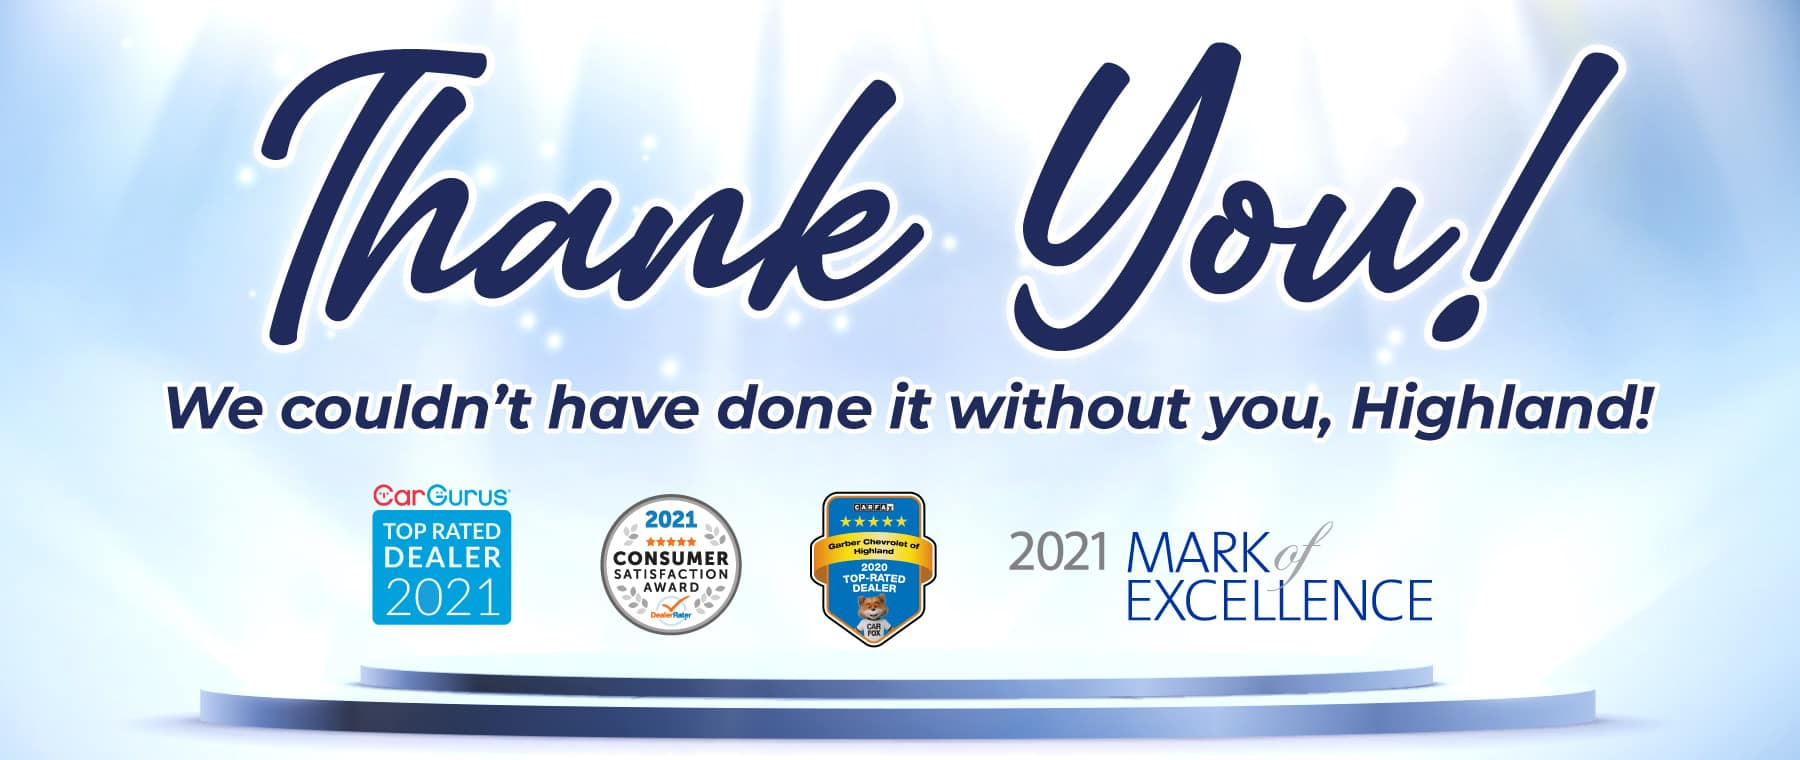 Thank you! We couldn't have done it without you, Highland!